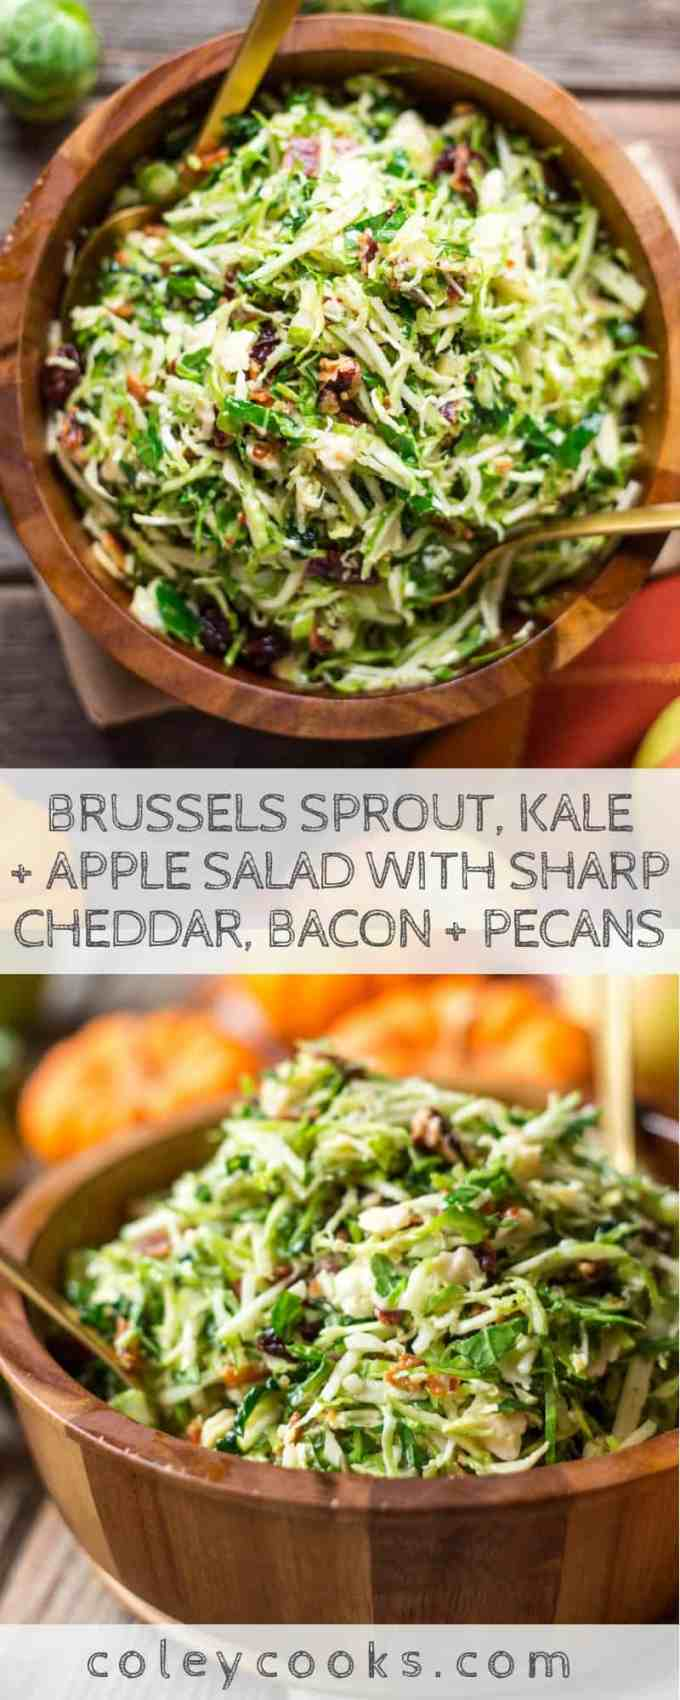 BRUSSELS SPROUT, KALE + APPLE SALAD with SHARP CHEDDAR, BACON + PECANS | Easy, flavorful and healthy fall salad perfect for Thanksgiving. #thanksgiving #side #salad #kale #brusselssprouts #recipe #apples #easy #makeahead | ColeyCooks.com